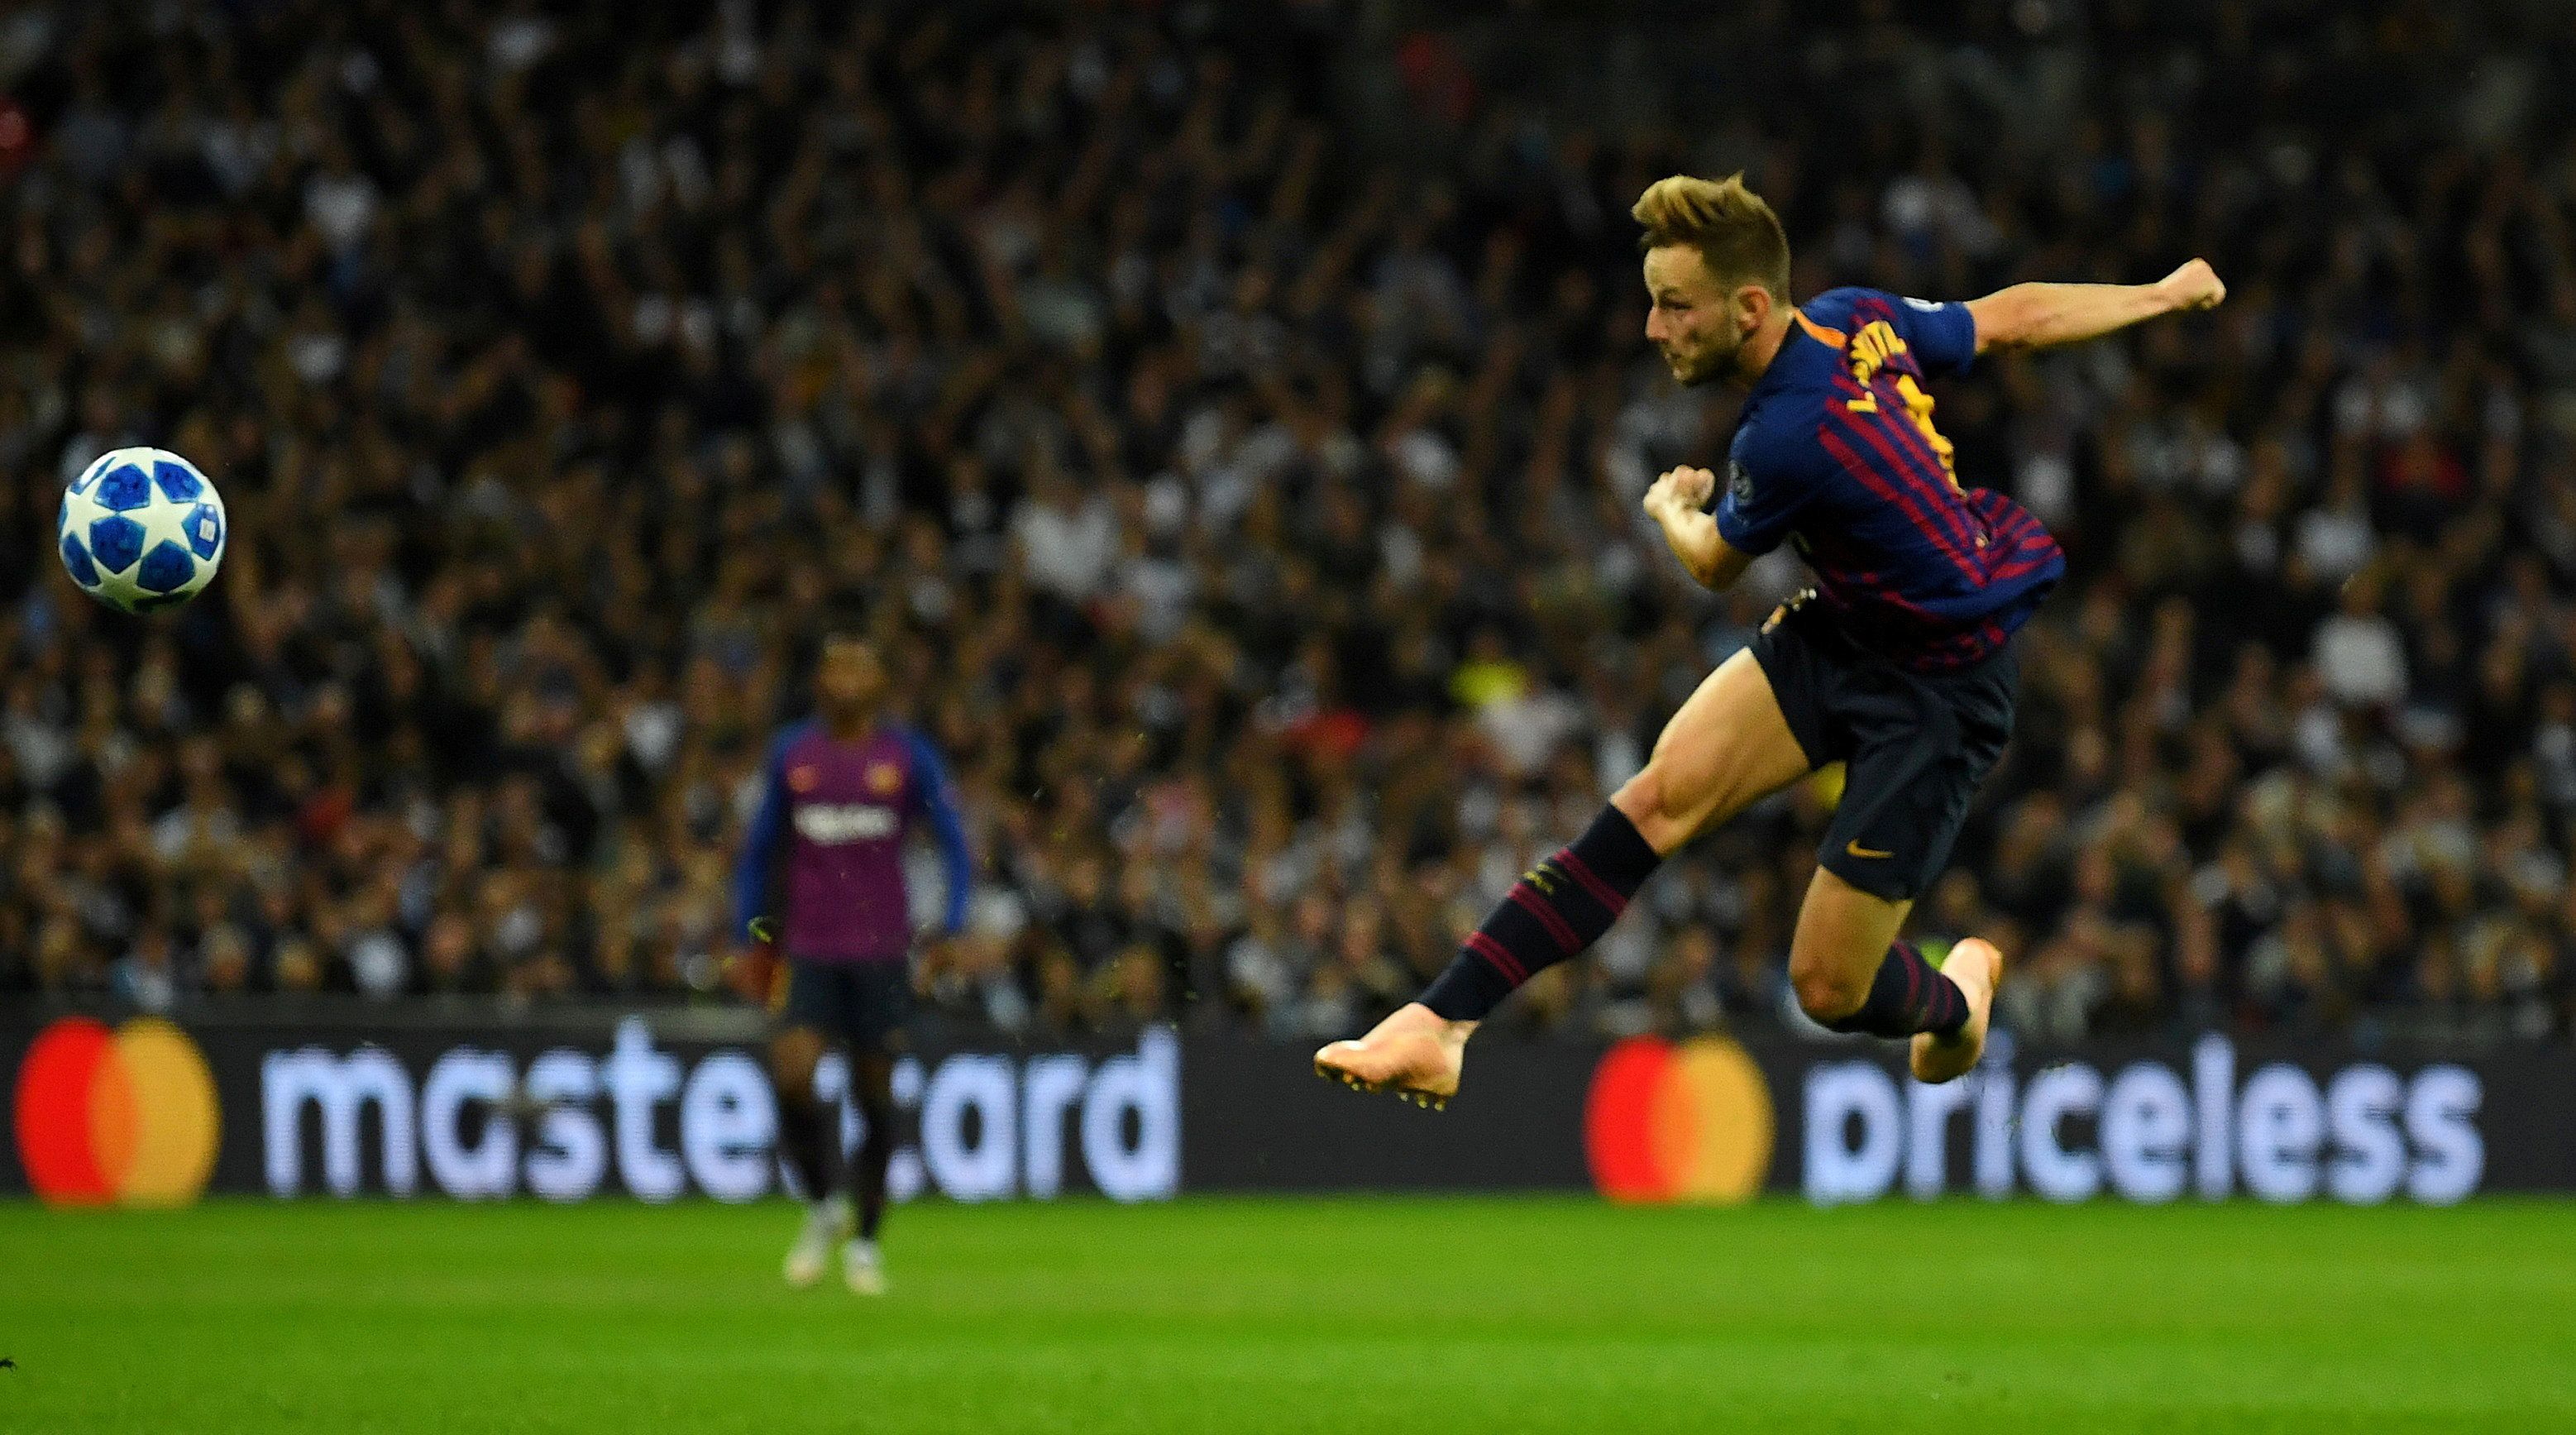 Soccer Football - Champions League - Group Stage - Group B - Tottenham Hotspur v FC Barcelona - Wembley Stadium, London, Britain - October 3, 2018  Barcelona's Ivan Rakitic scores their second goal   REUTERS/Dylan Martinez     TPX IMAGES OF THE DAY